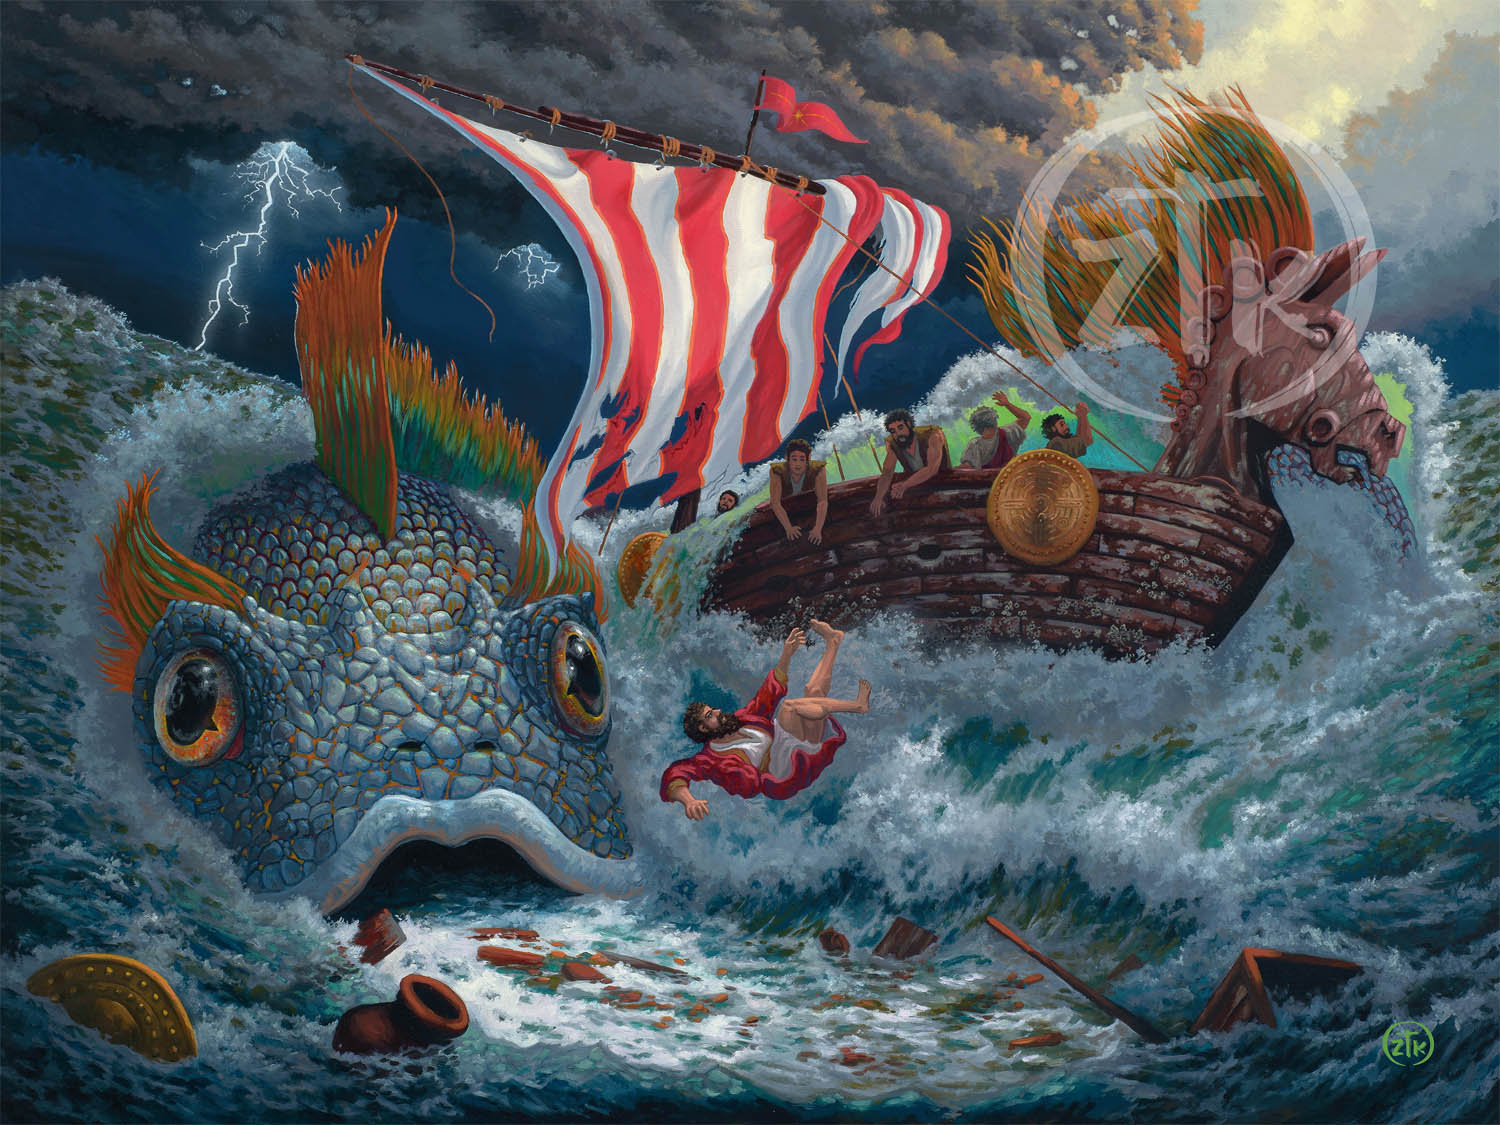 While Jonah was discovering these wonderful truths in the fish belly deep below, the sailors in the ship above were already doing what Jonah was promising God: worshipping the Lord and offering Him sacrifices (Jonah 1:16).